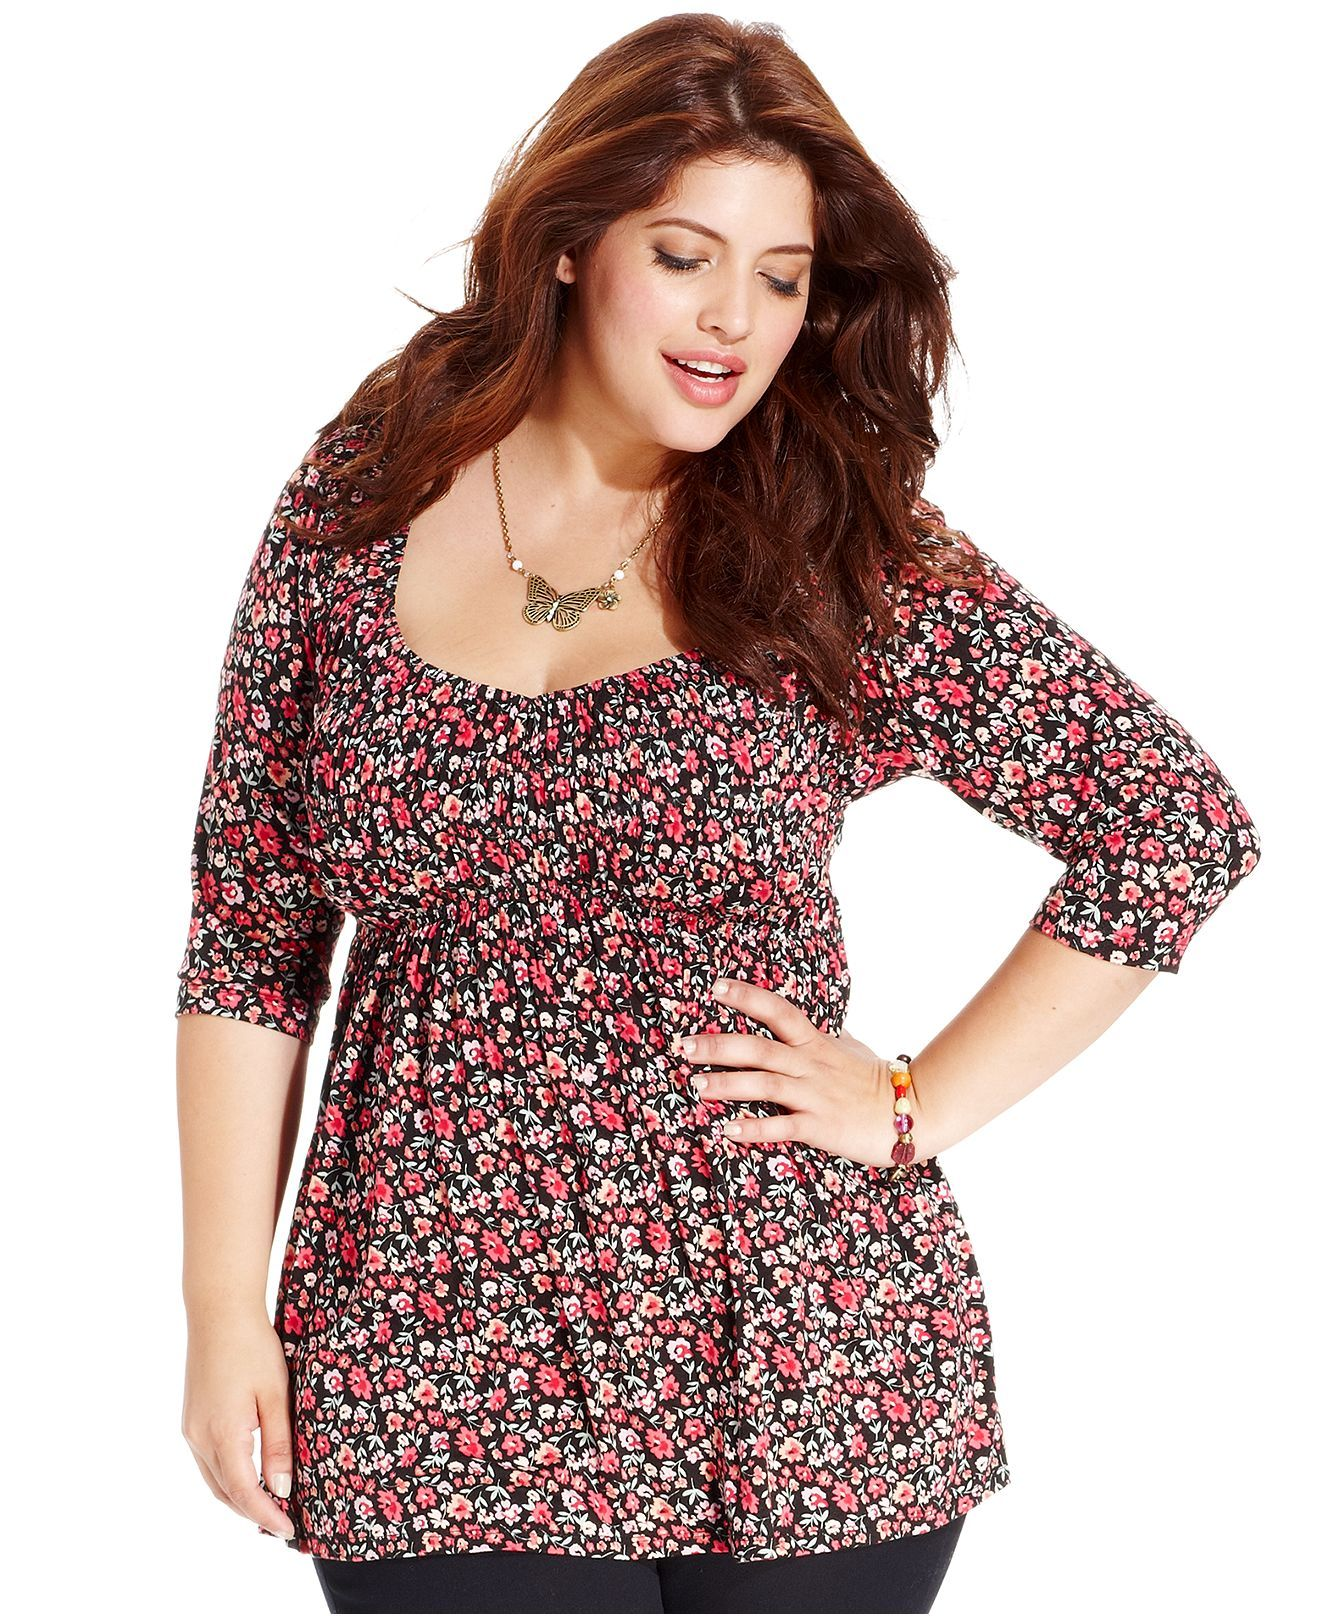 3774d732a17df American Rag Plus Size Top, Three-Quarter-Sleeve Floral-Print Babydoll - American  Rag - Plus Sizes - Macy's